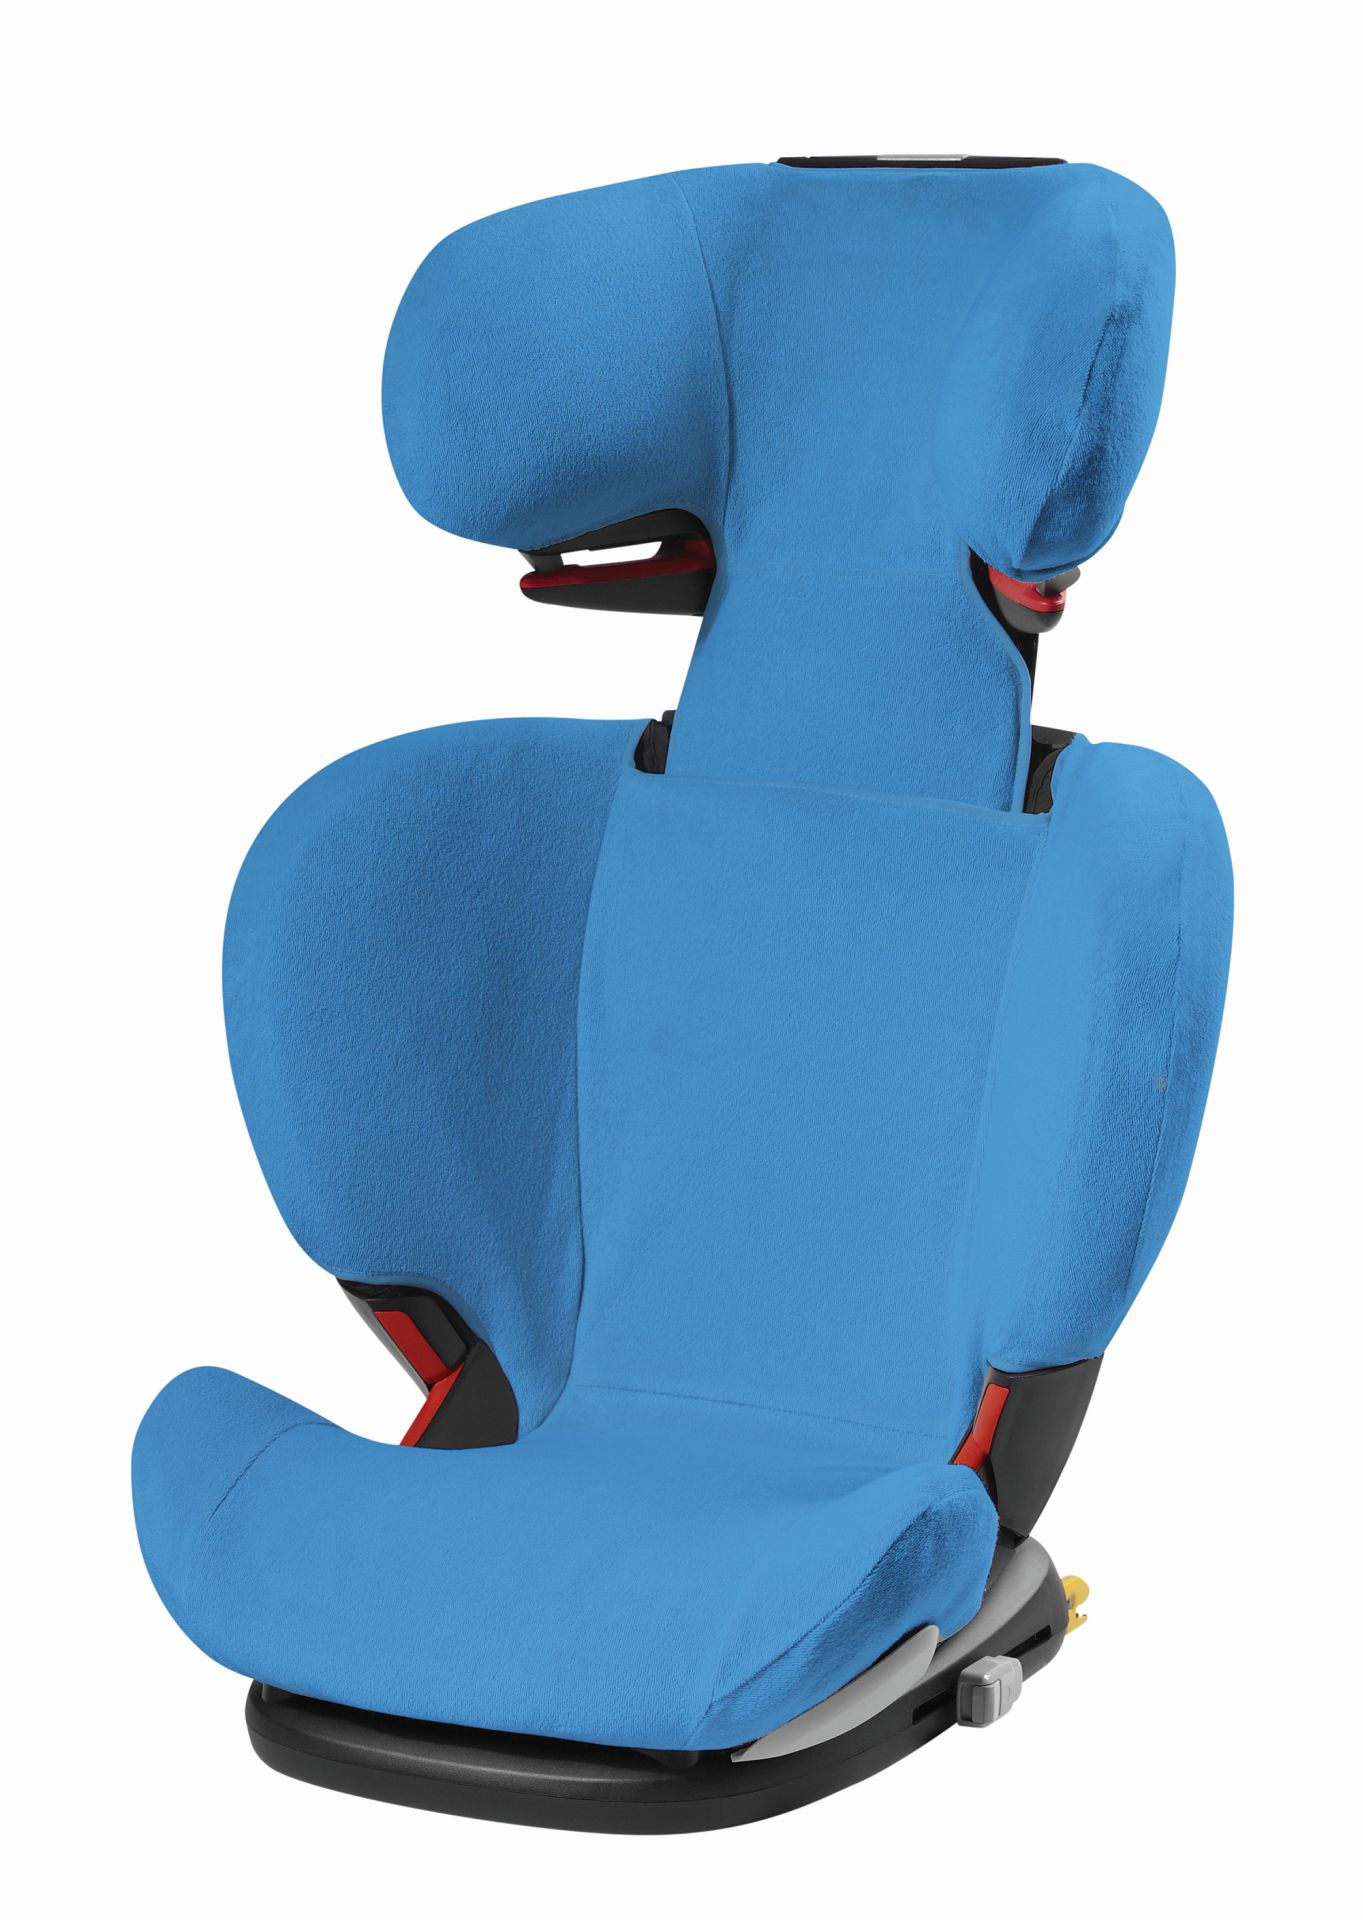 maxi cosi summer cover for child car seat rodifix airprotect blau buy at kidsroom car seats. Black Bedroom Furniture Sets. Home Design Ideas